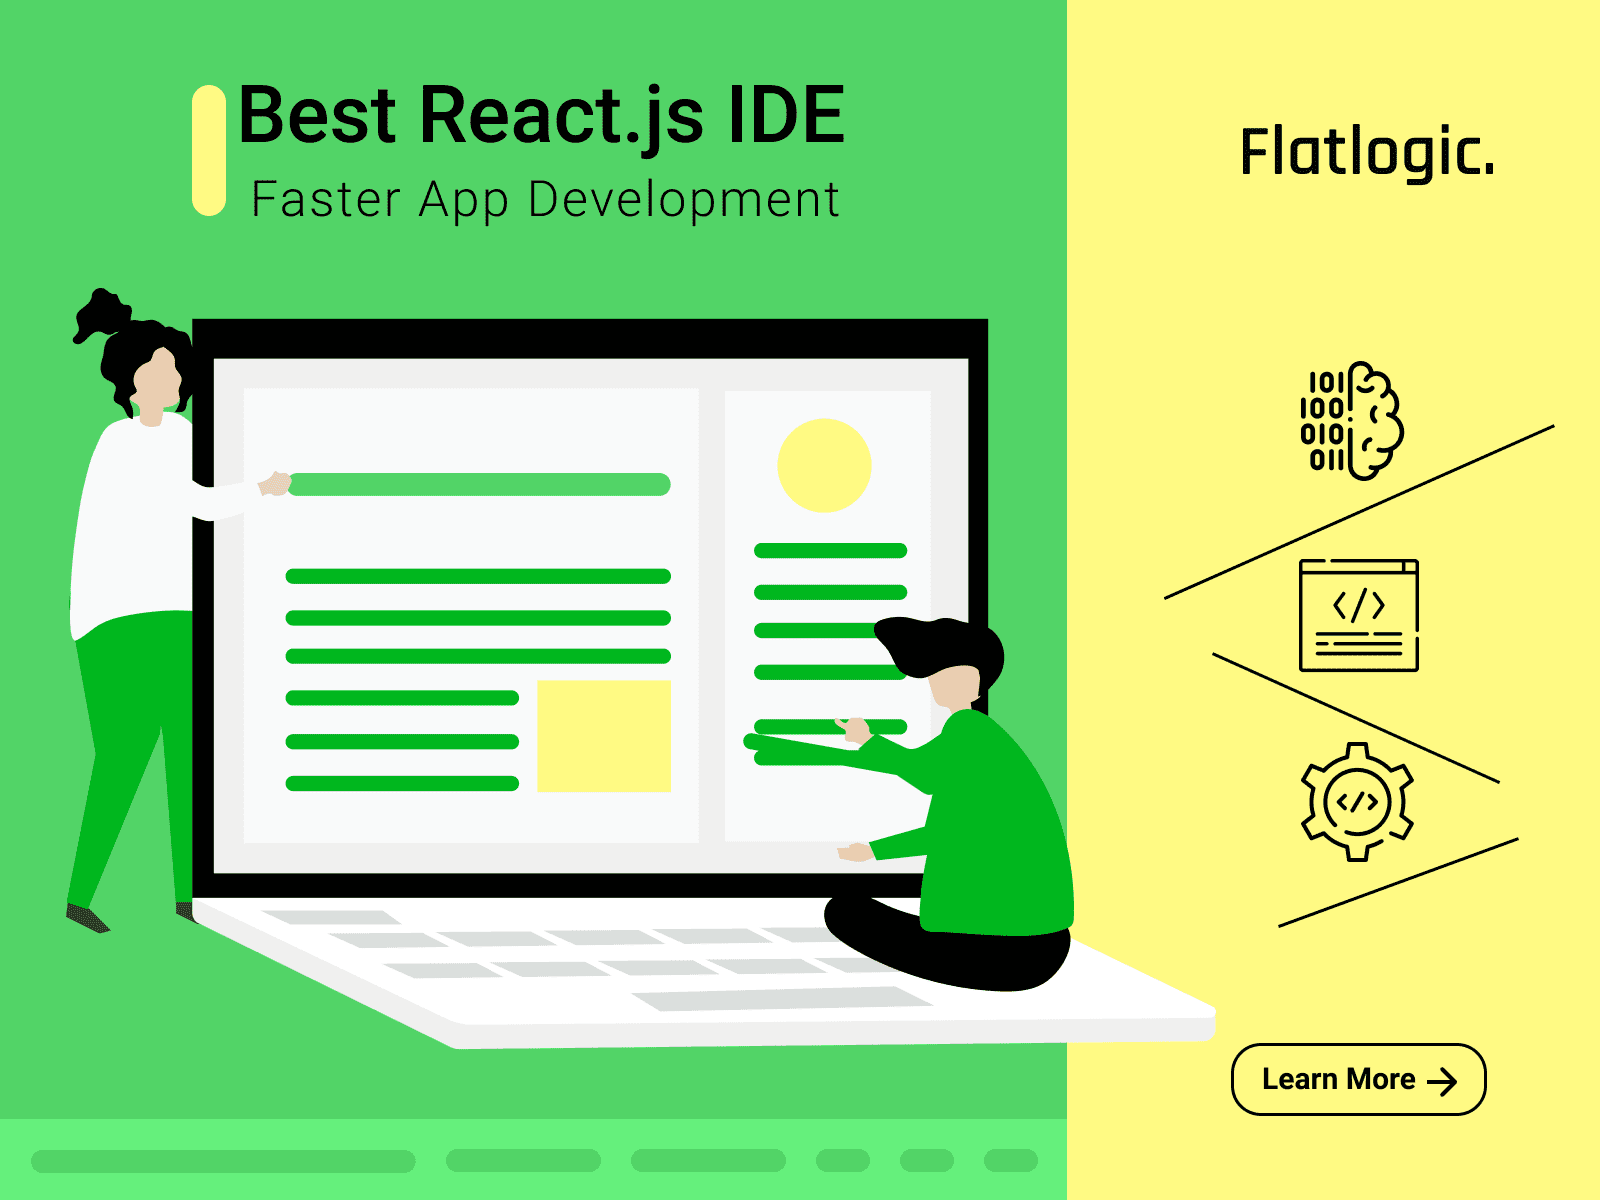 Best 10 IDEs for React.js for 2021